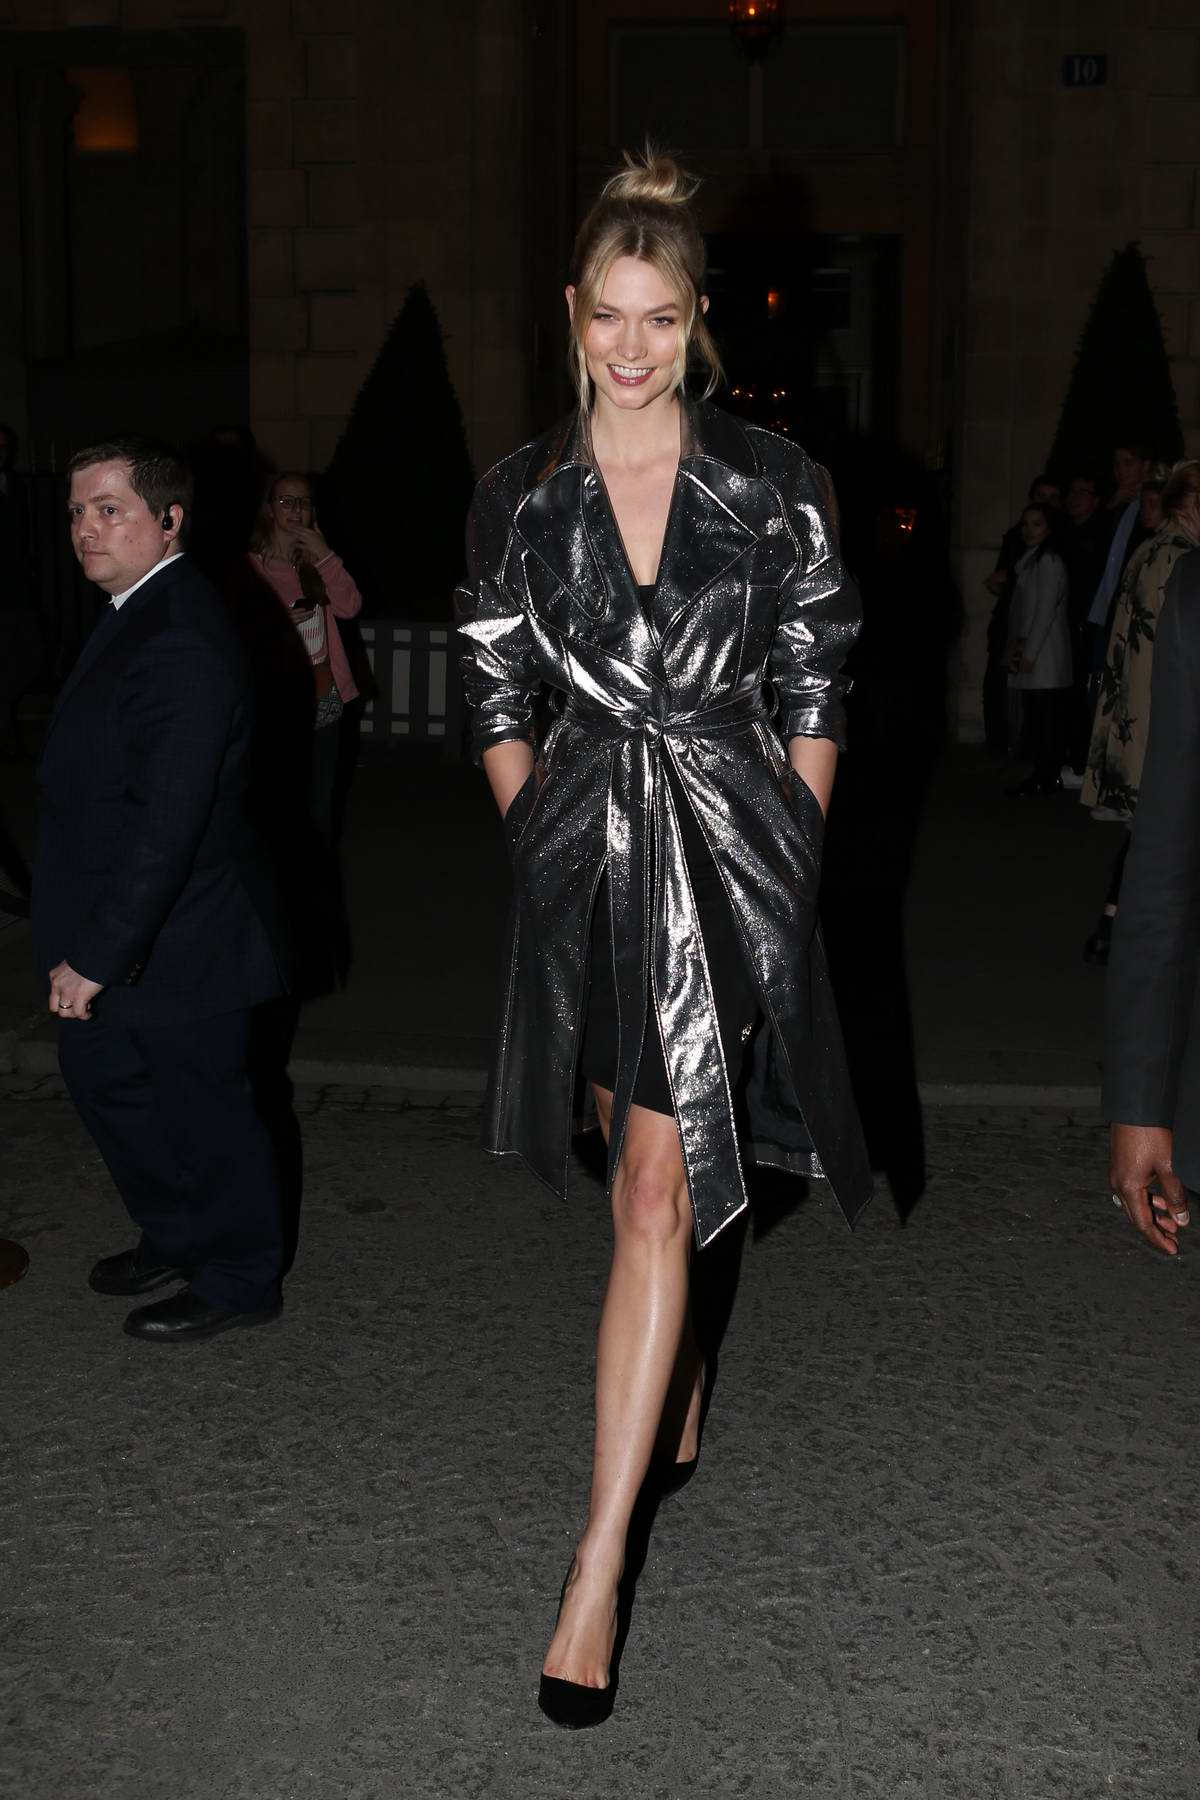 Karlie Kloss seen leaving her hotel while heading to an event during the Paris Fashion Week 2019 in Paris, France